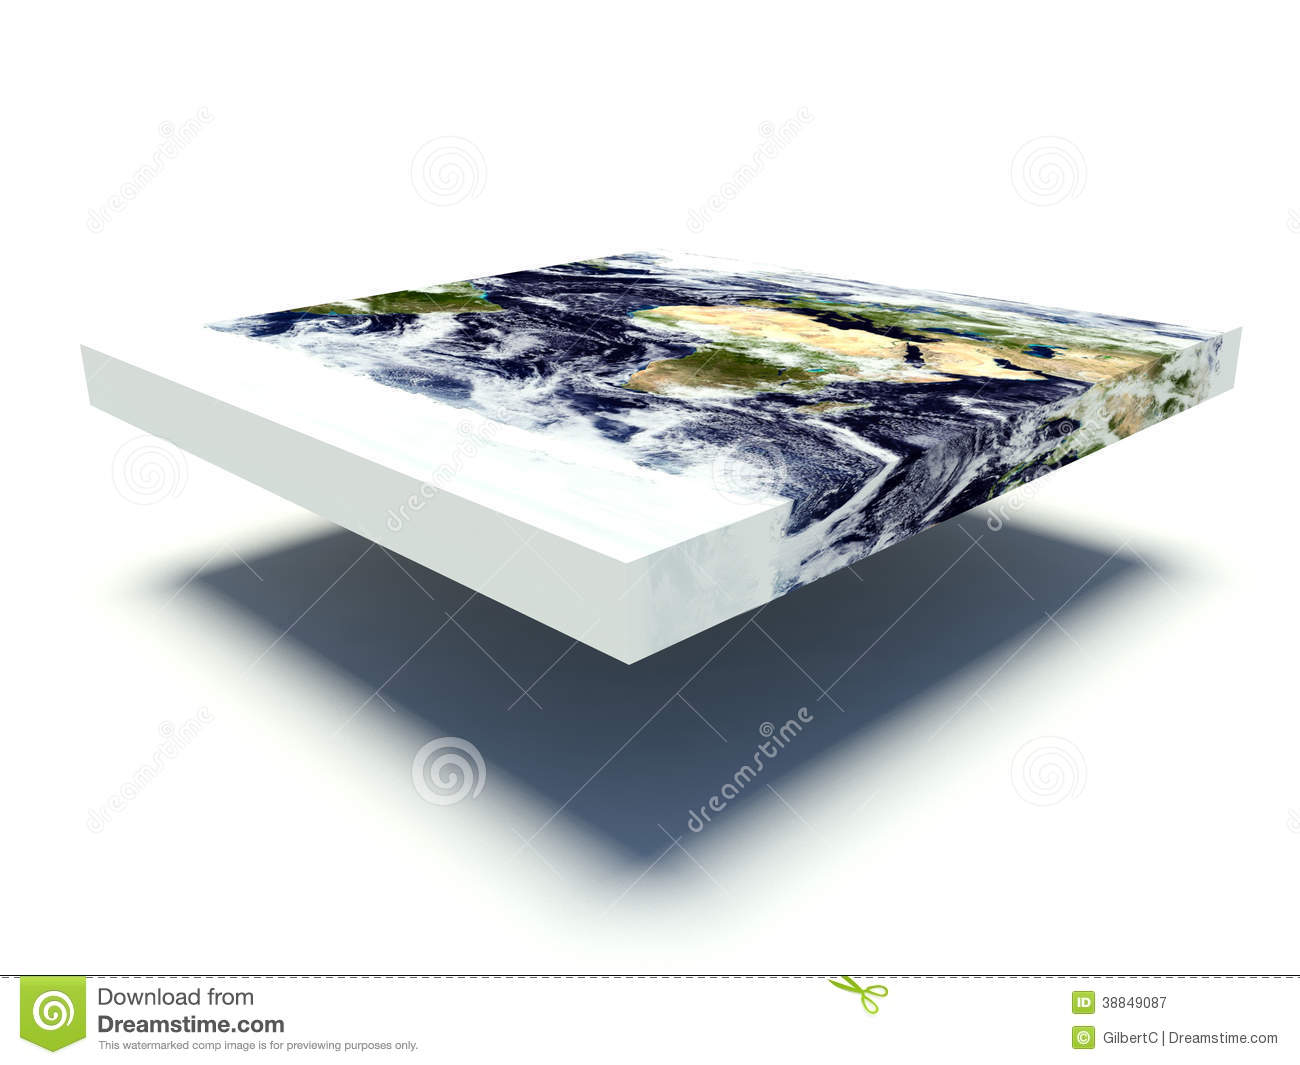 Deciding stock illustrations royalty free gograph - Royalty Free Stock Photo Flat Earth Model Stock Illustration